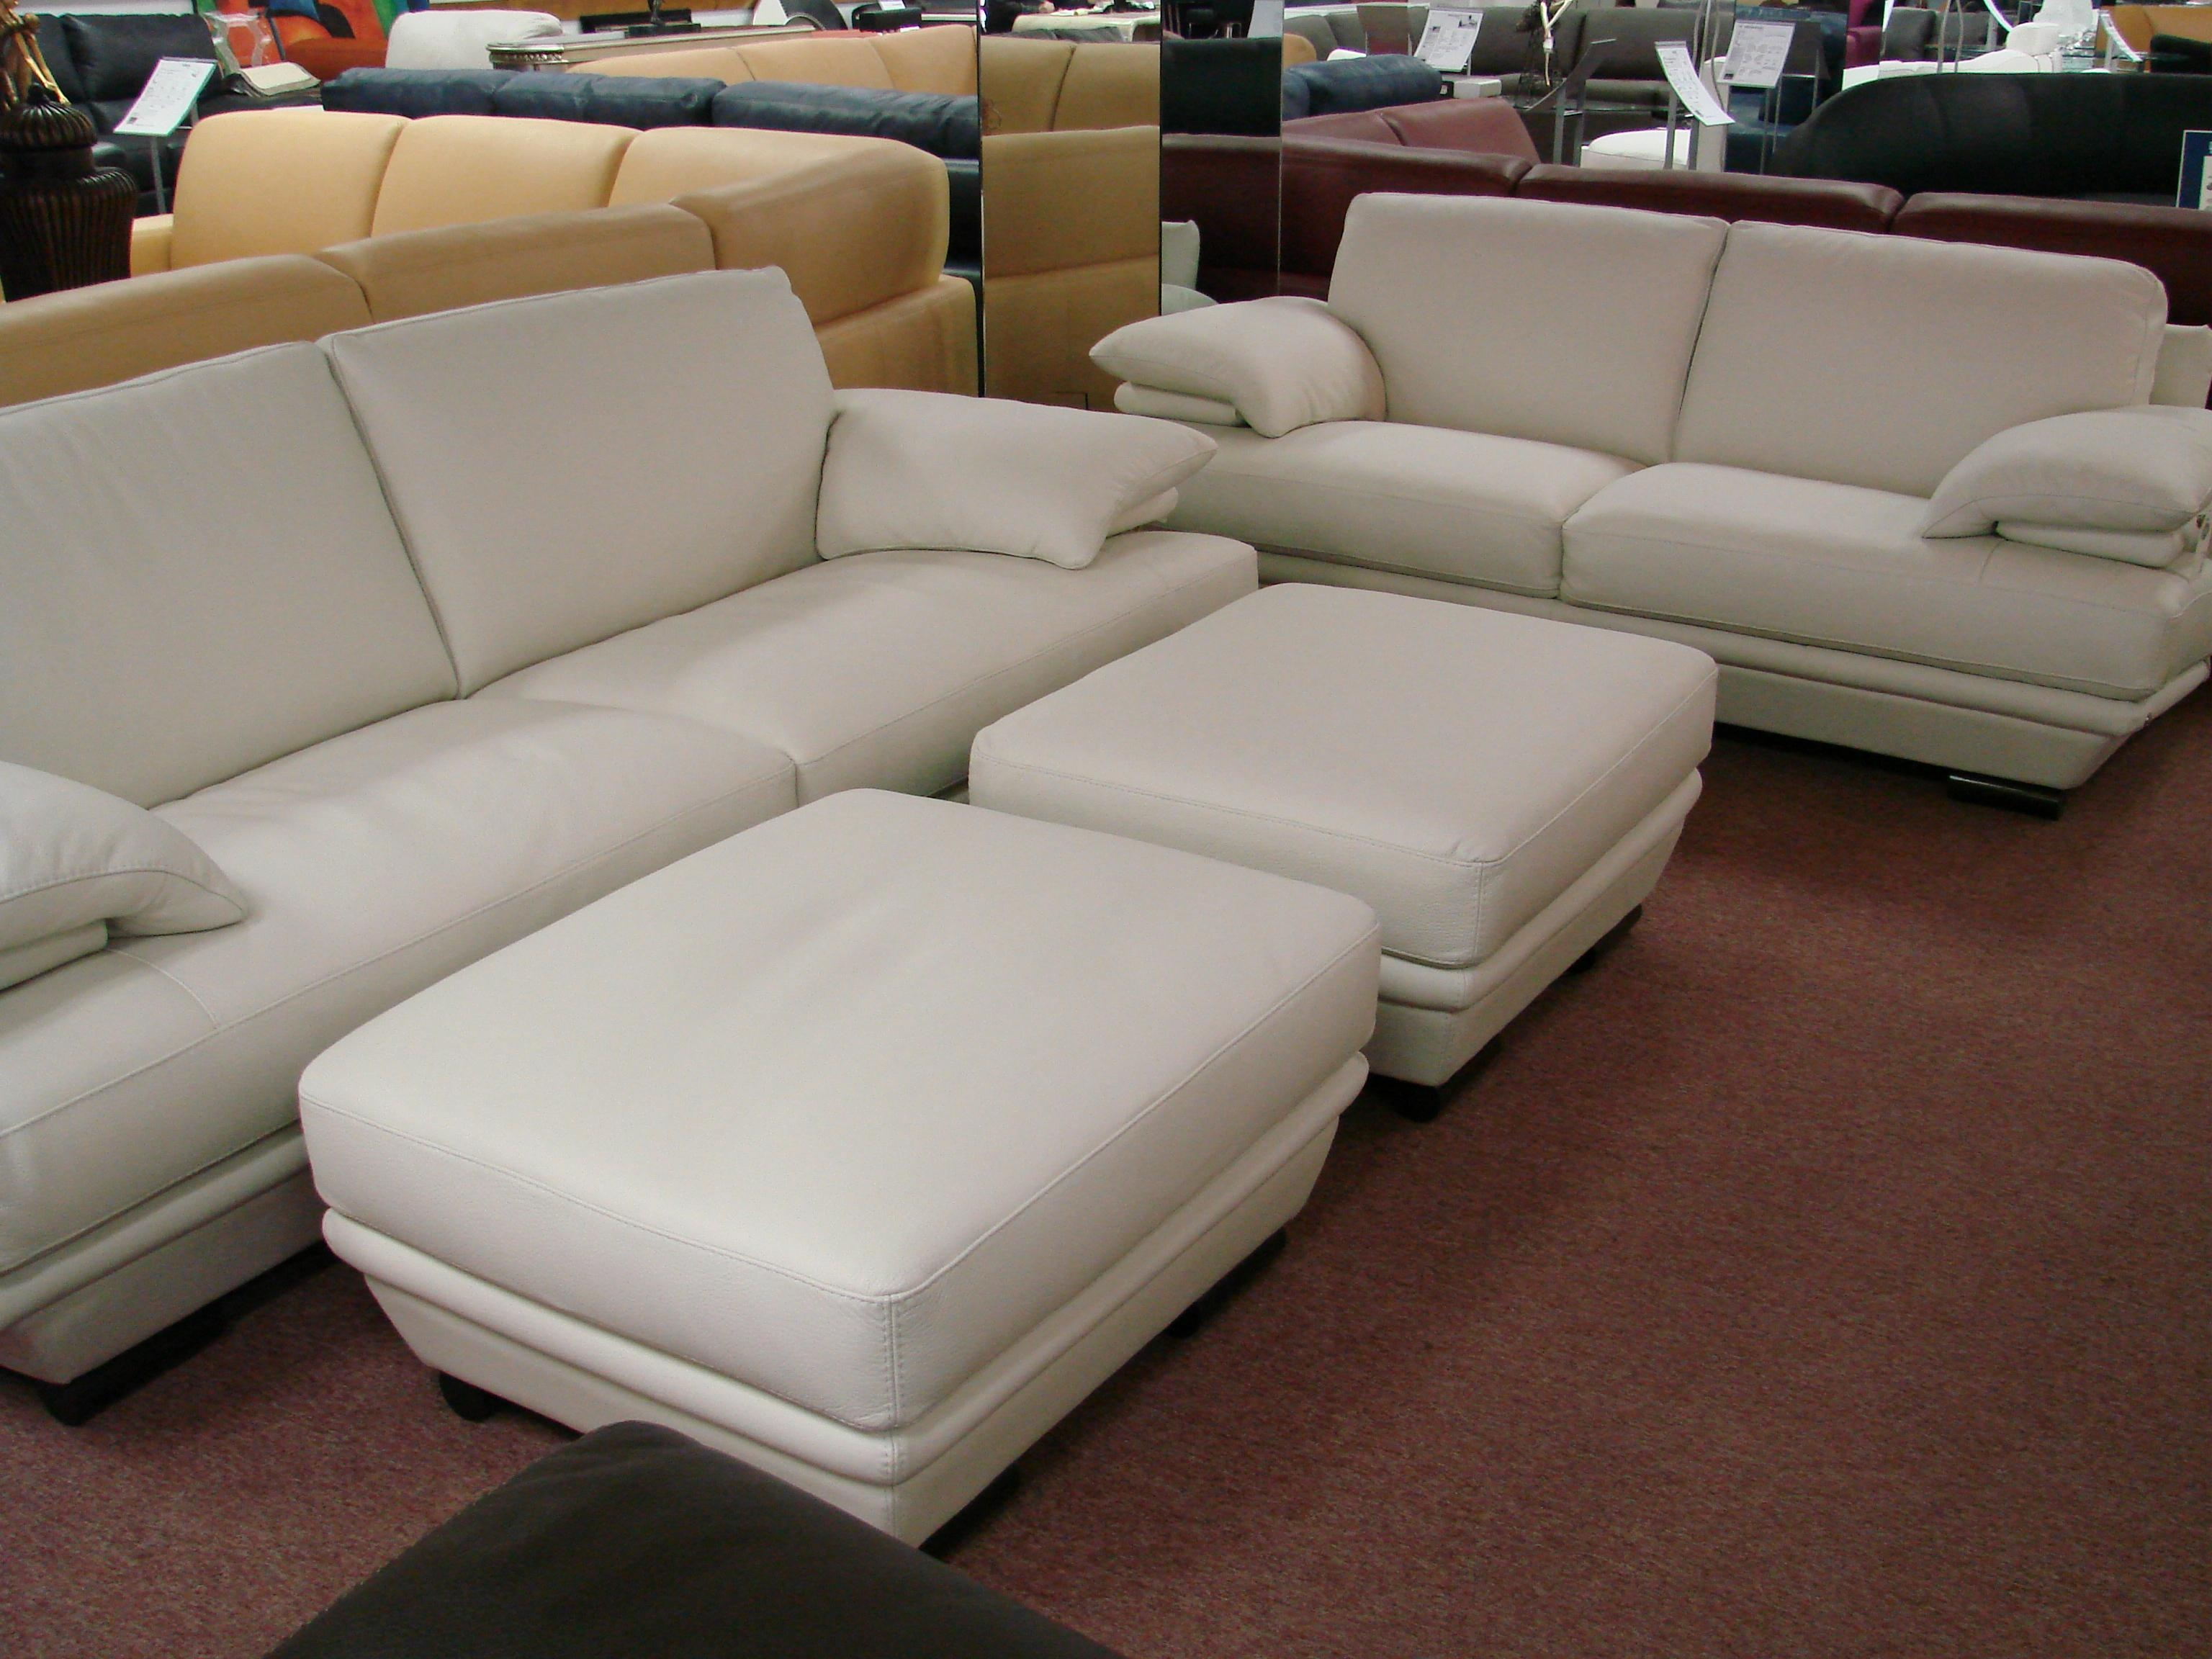 cult sectional leather sofa by natuzzi italia double bed uk cheap 20 best ideas sleeper sofas